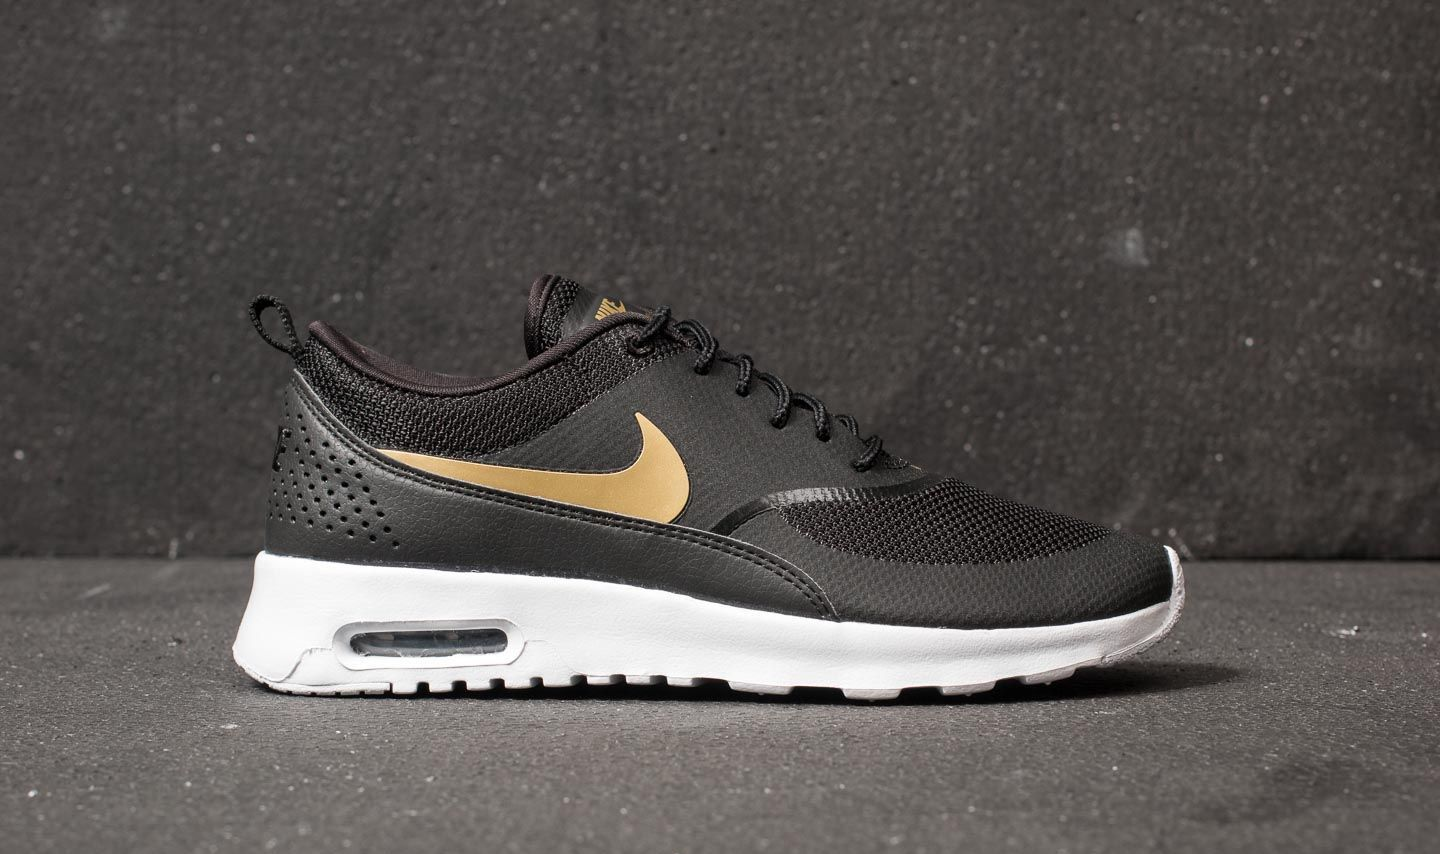 reputable site 3094c 9ab88 Nike Wmns Air Max Thea J Black  Metallic Gold-White au meilleur prix 121